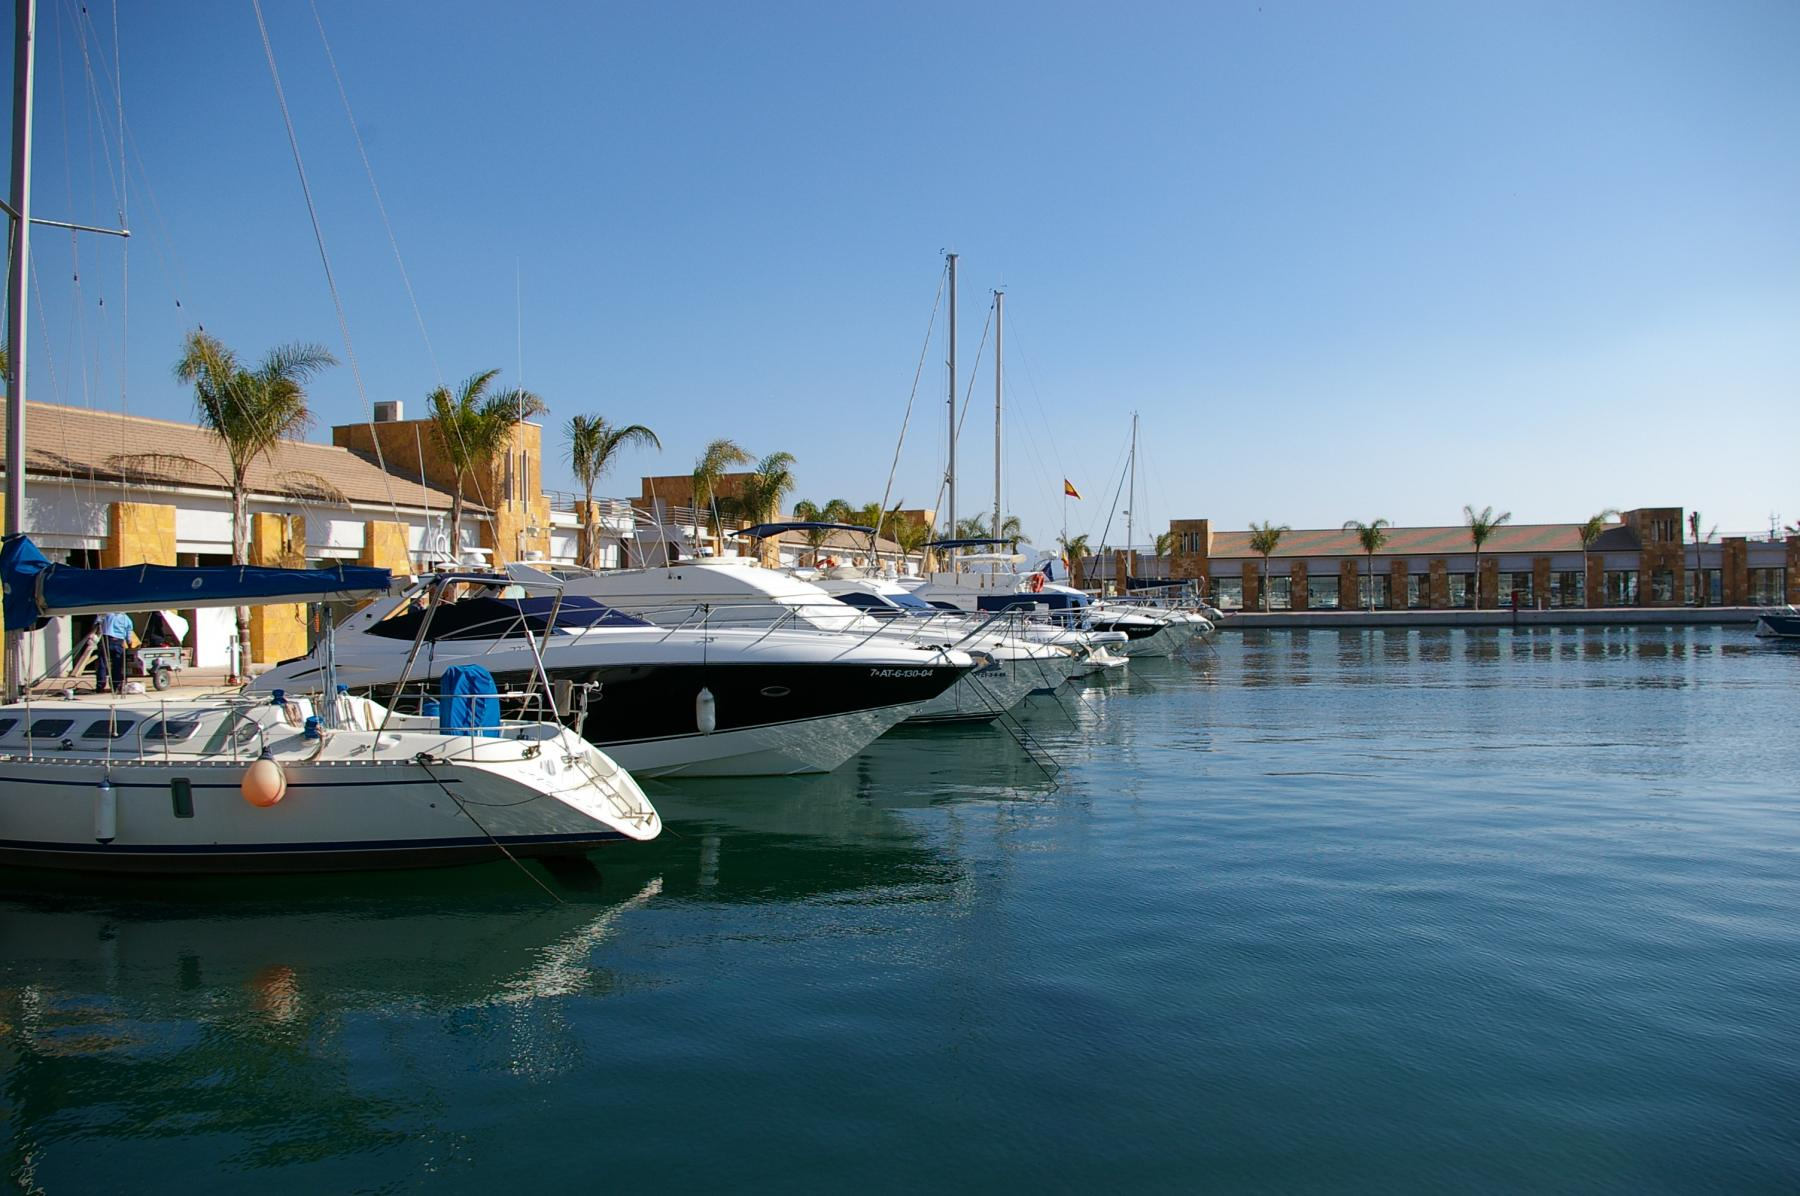 New Marina in the Port of Mazarron